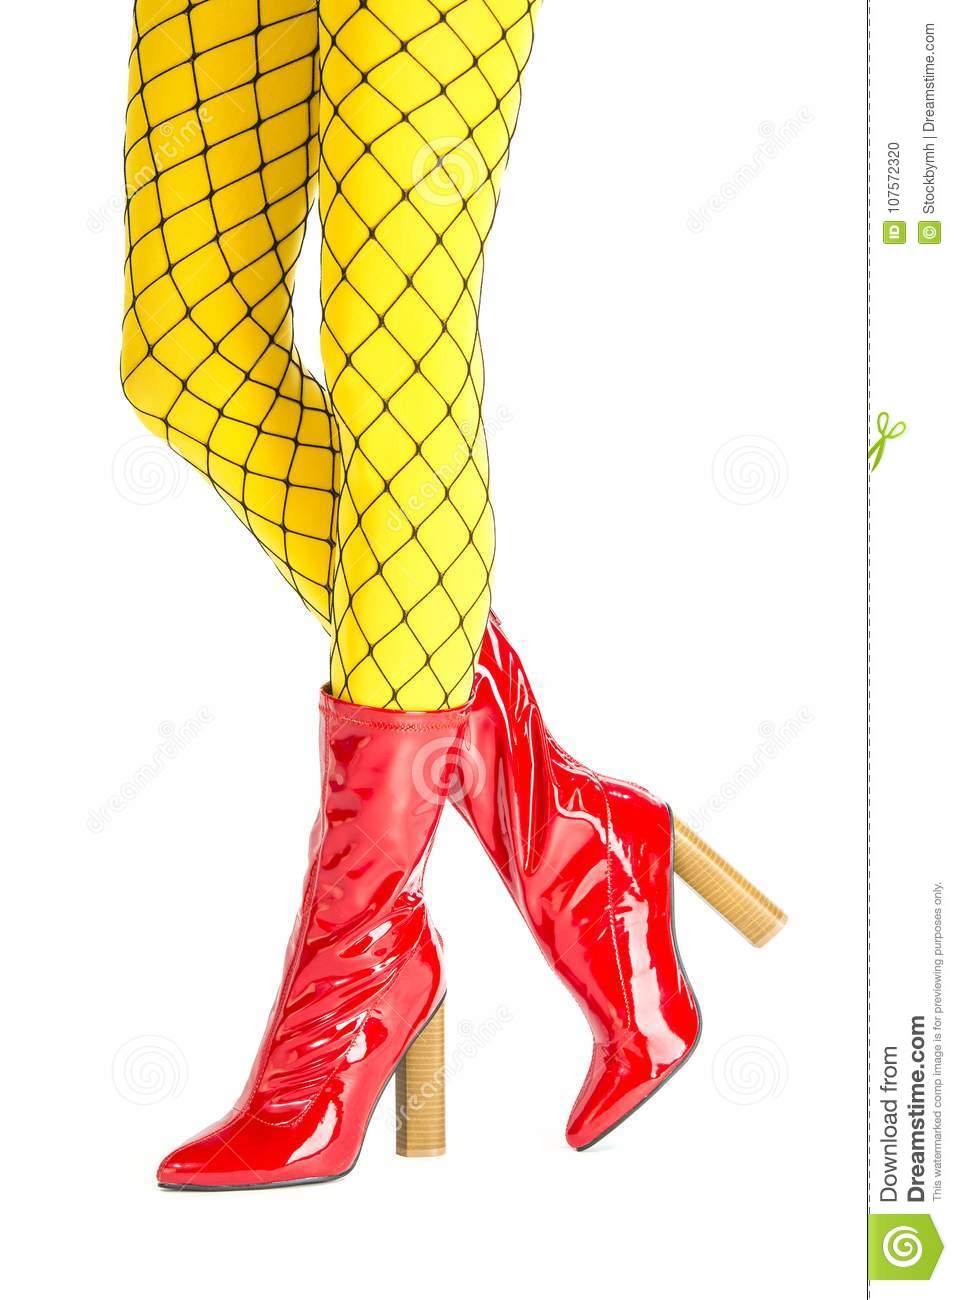 df574c2fd Pretty legs in fishnet stockings above yellow tights and high heels boots  made of red latex